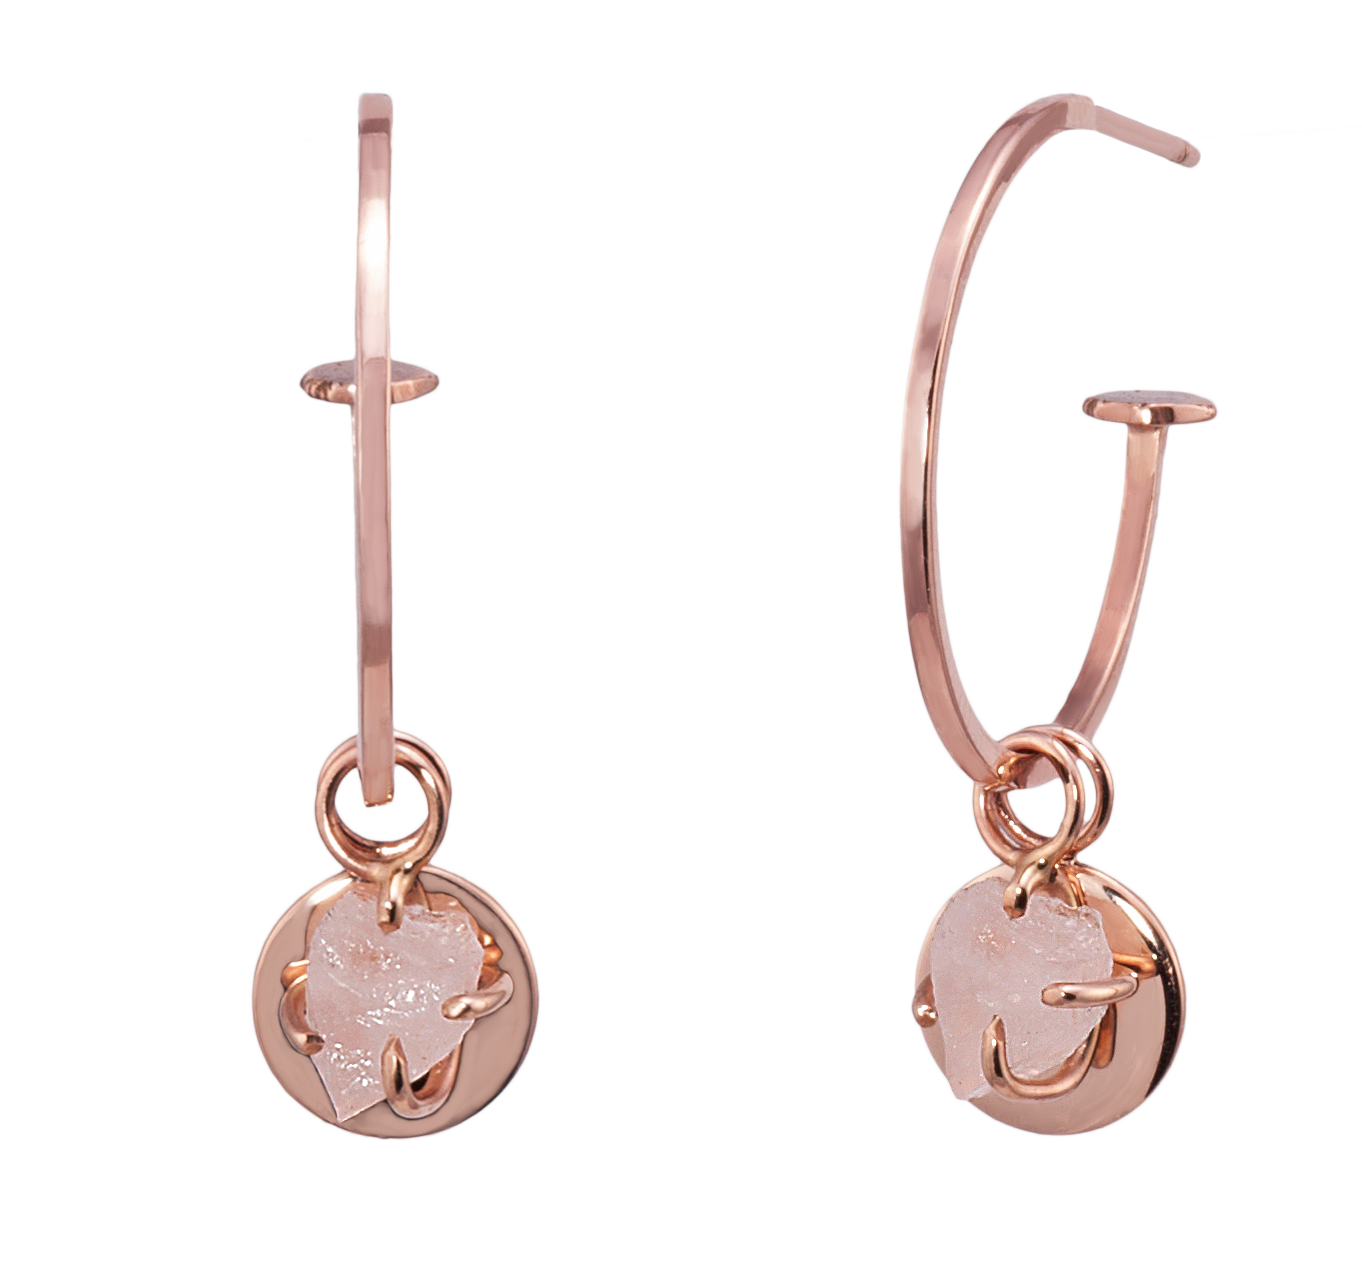 G-Candy Hoops in Gold with Rosequartz and Disks